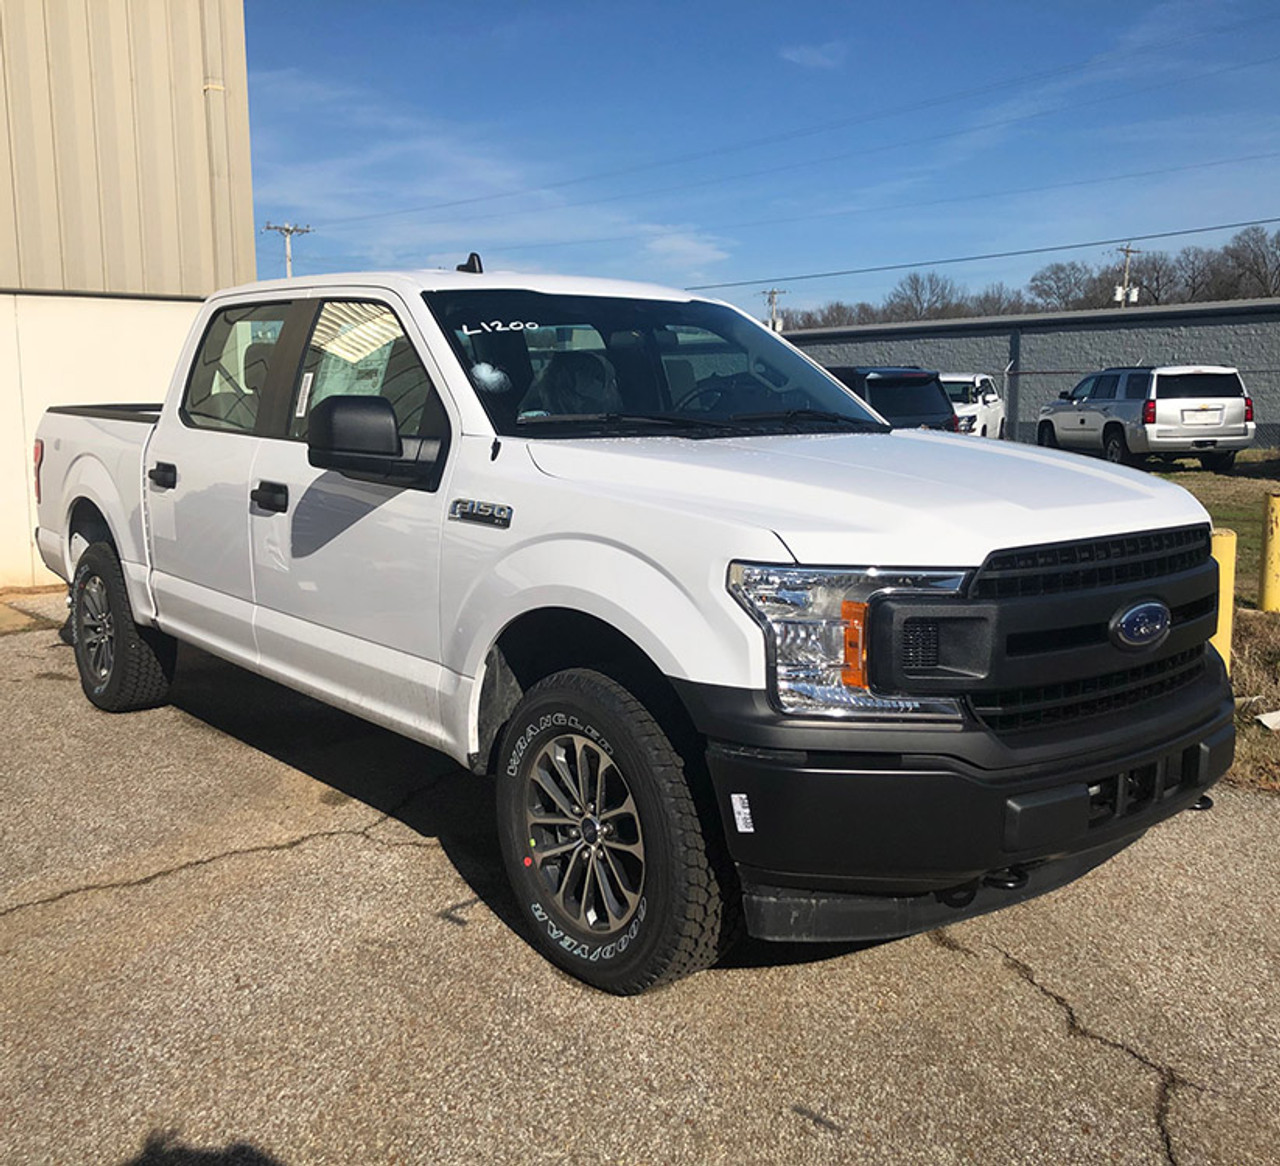 New 2020 White Ford F-150 Responder Police Package 4x4 PPV Ecoboost ready to be built as a Marked Patrol Package, choose any color LED Lights, + Delivery